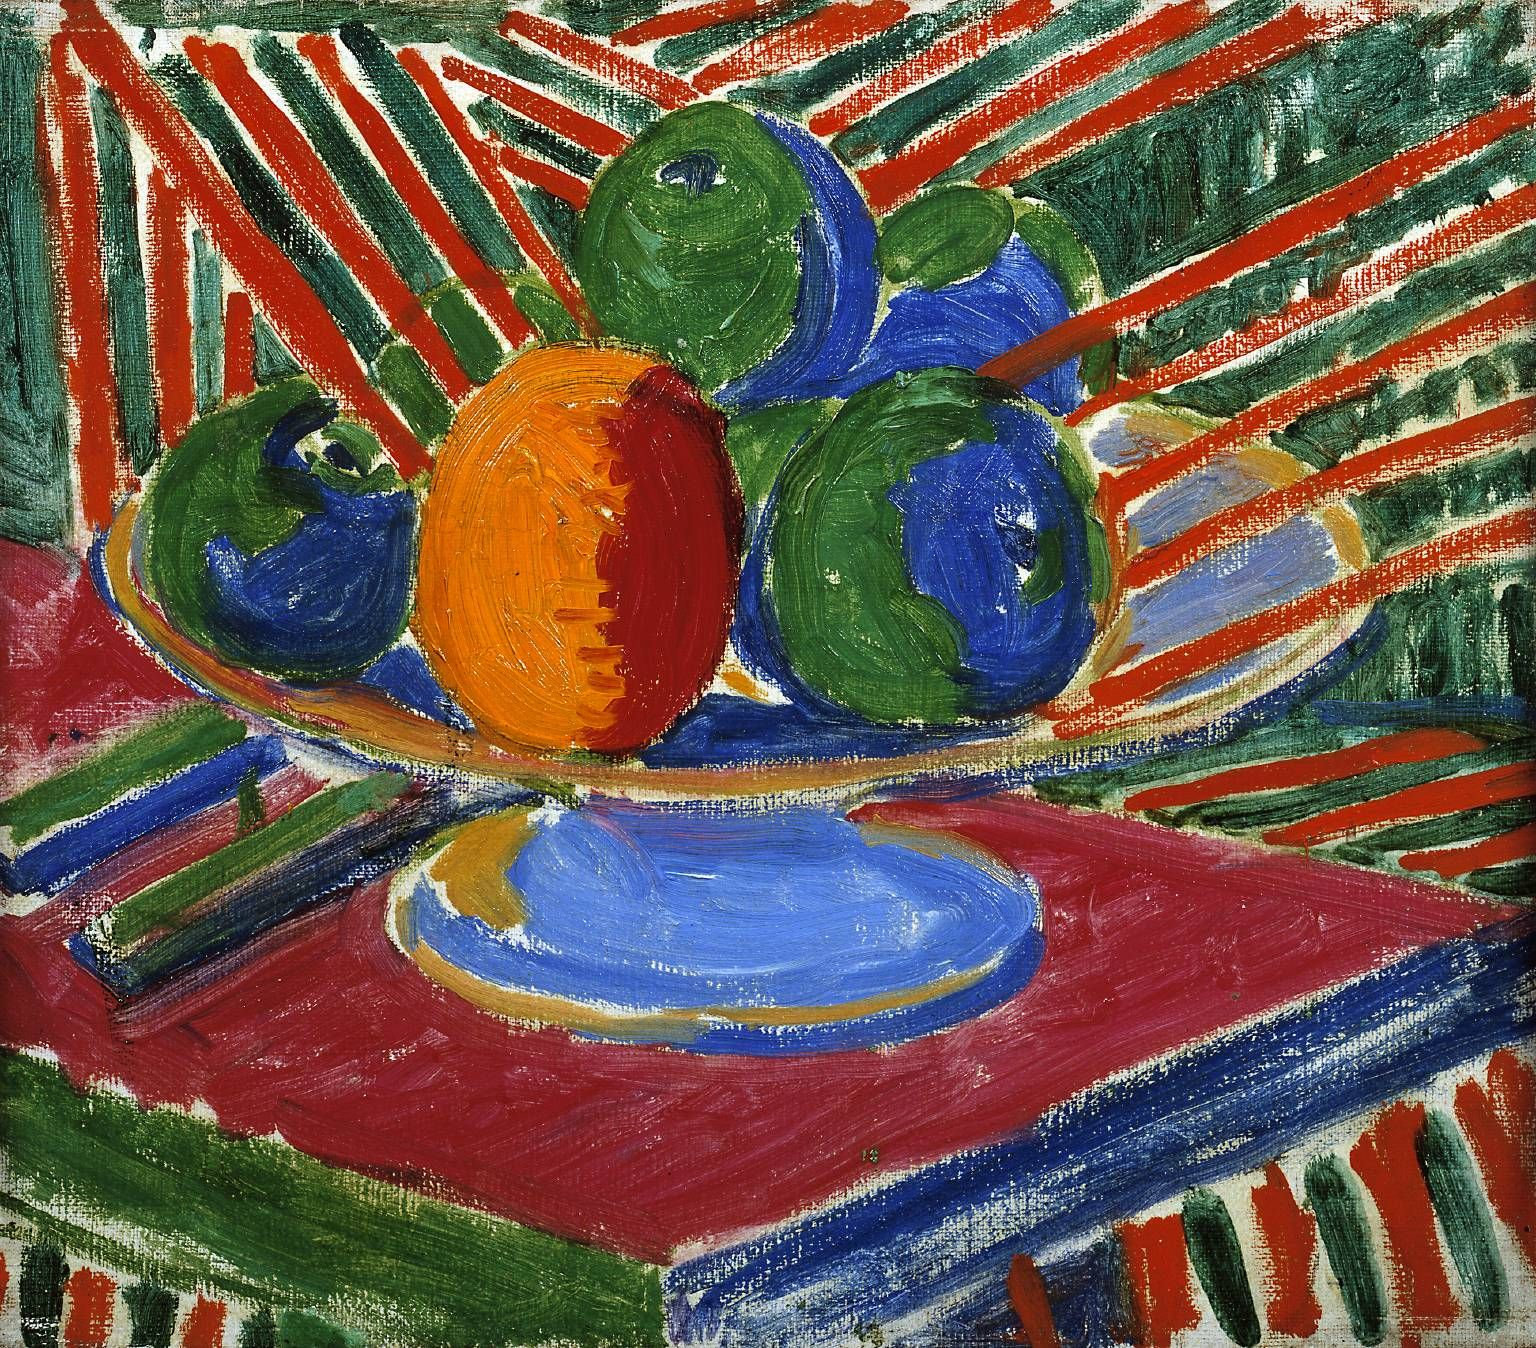 Sir Matthew Smith - Fruit in a Dish, 1915, oil on canvas